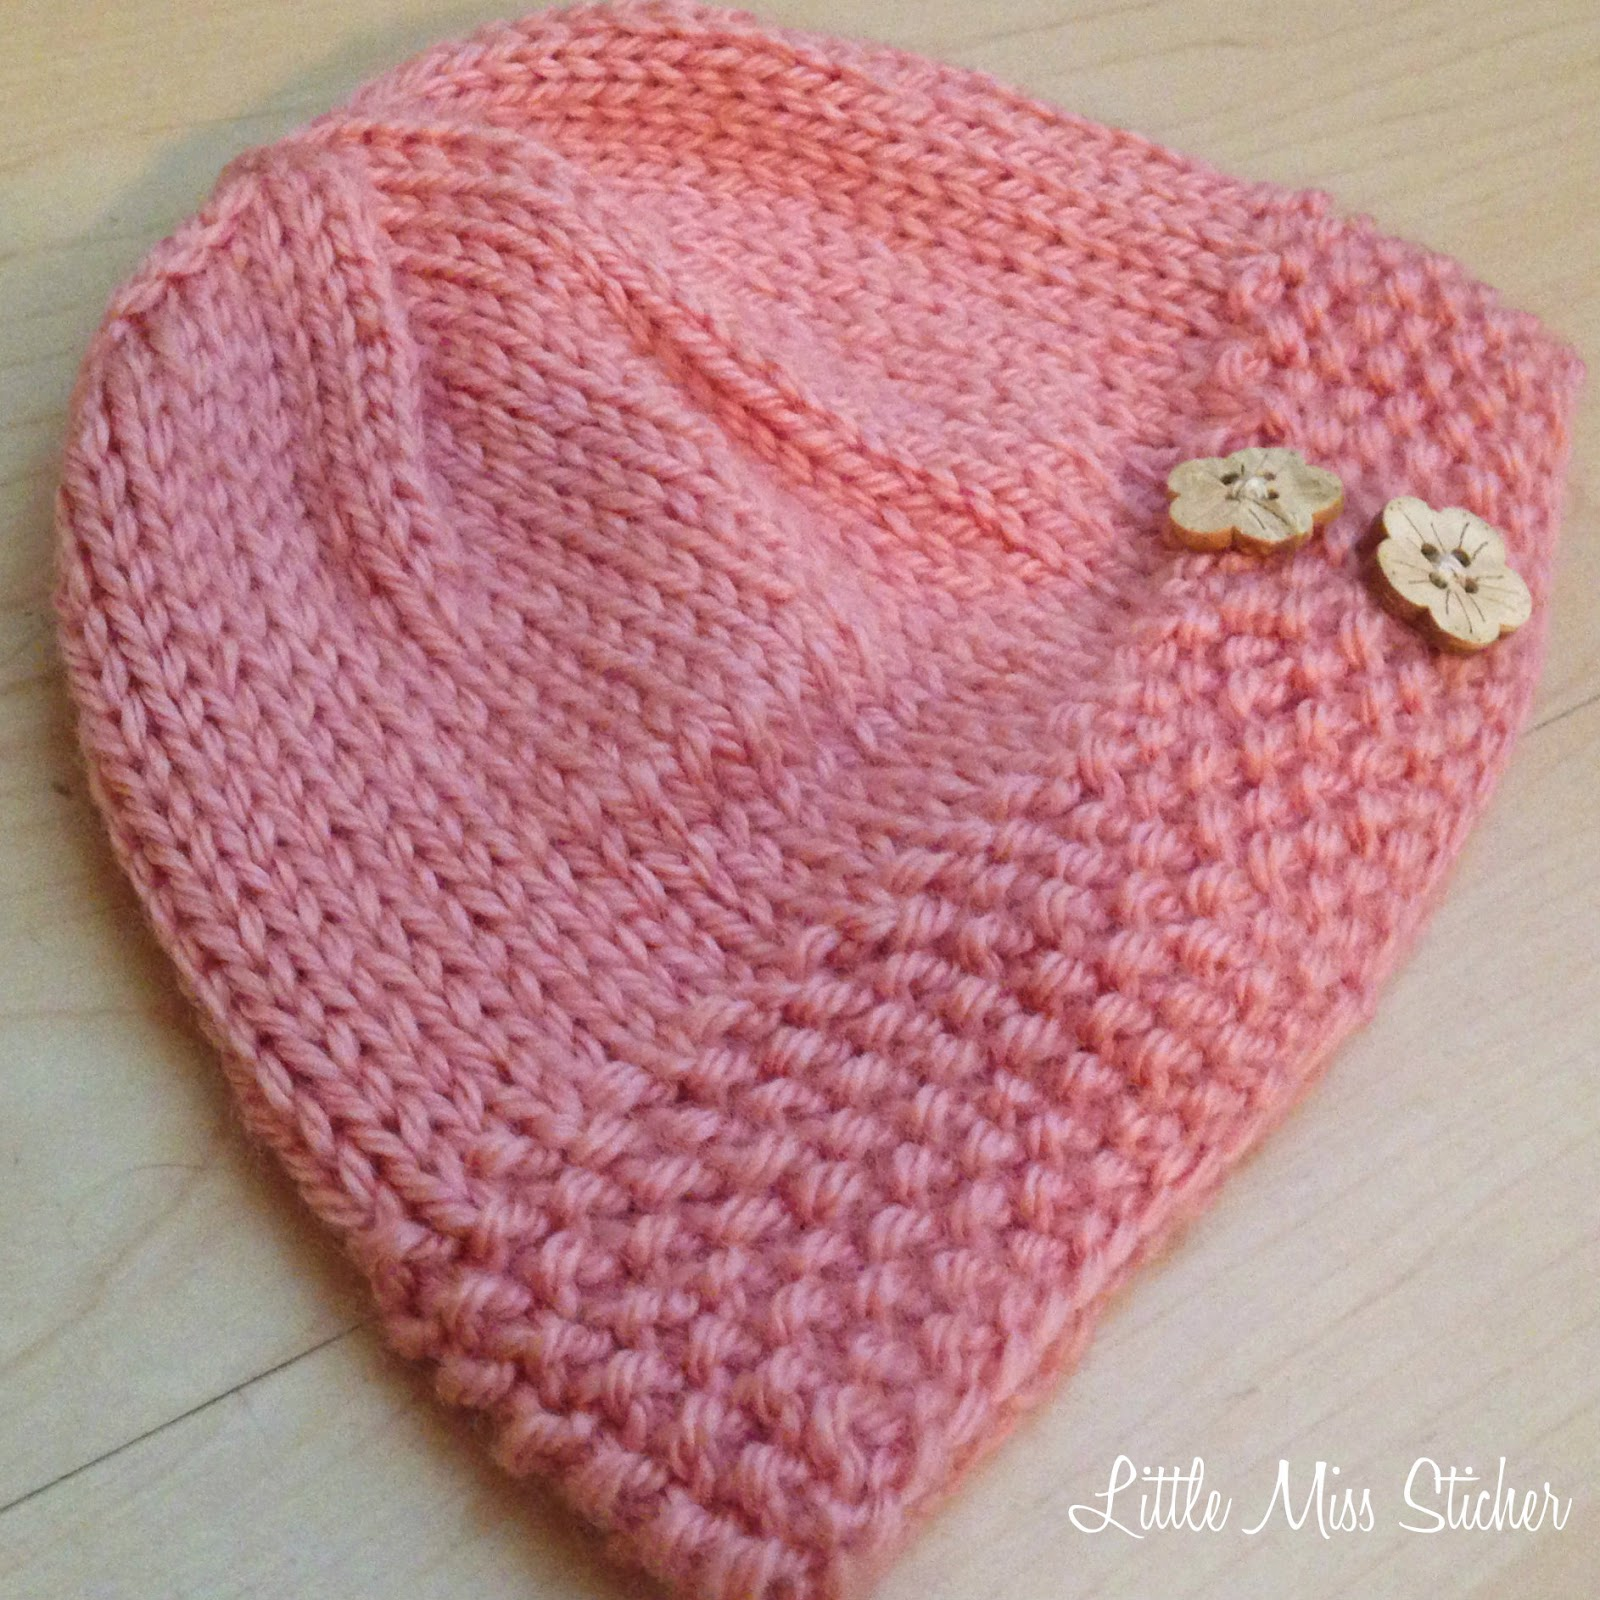 Free Knitting Patterns For Toddler Hats On Straight Needles : Little Miss Stitcher: Bitty Beanie Free Knit Pattern